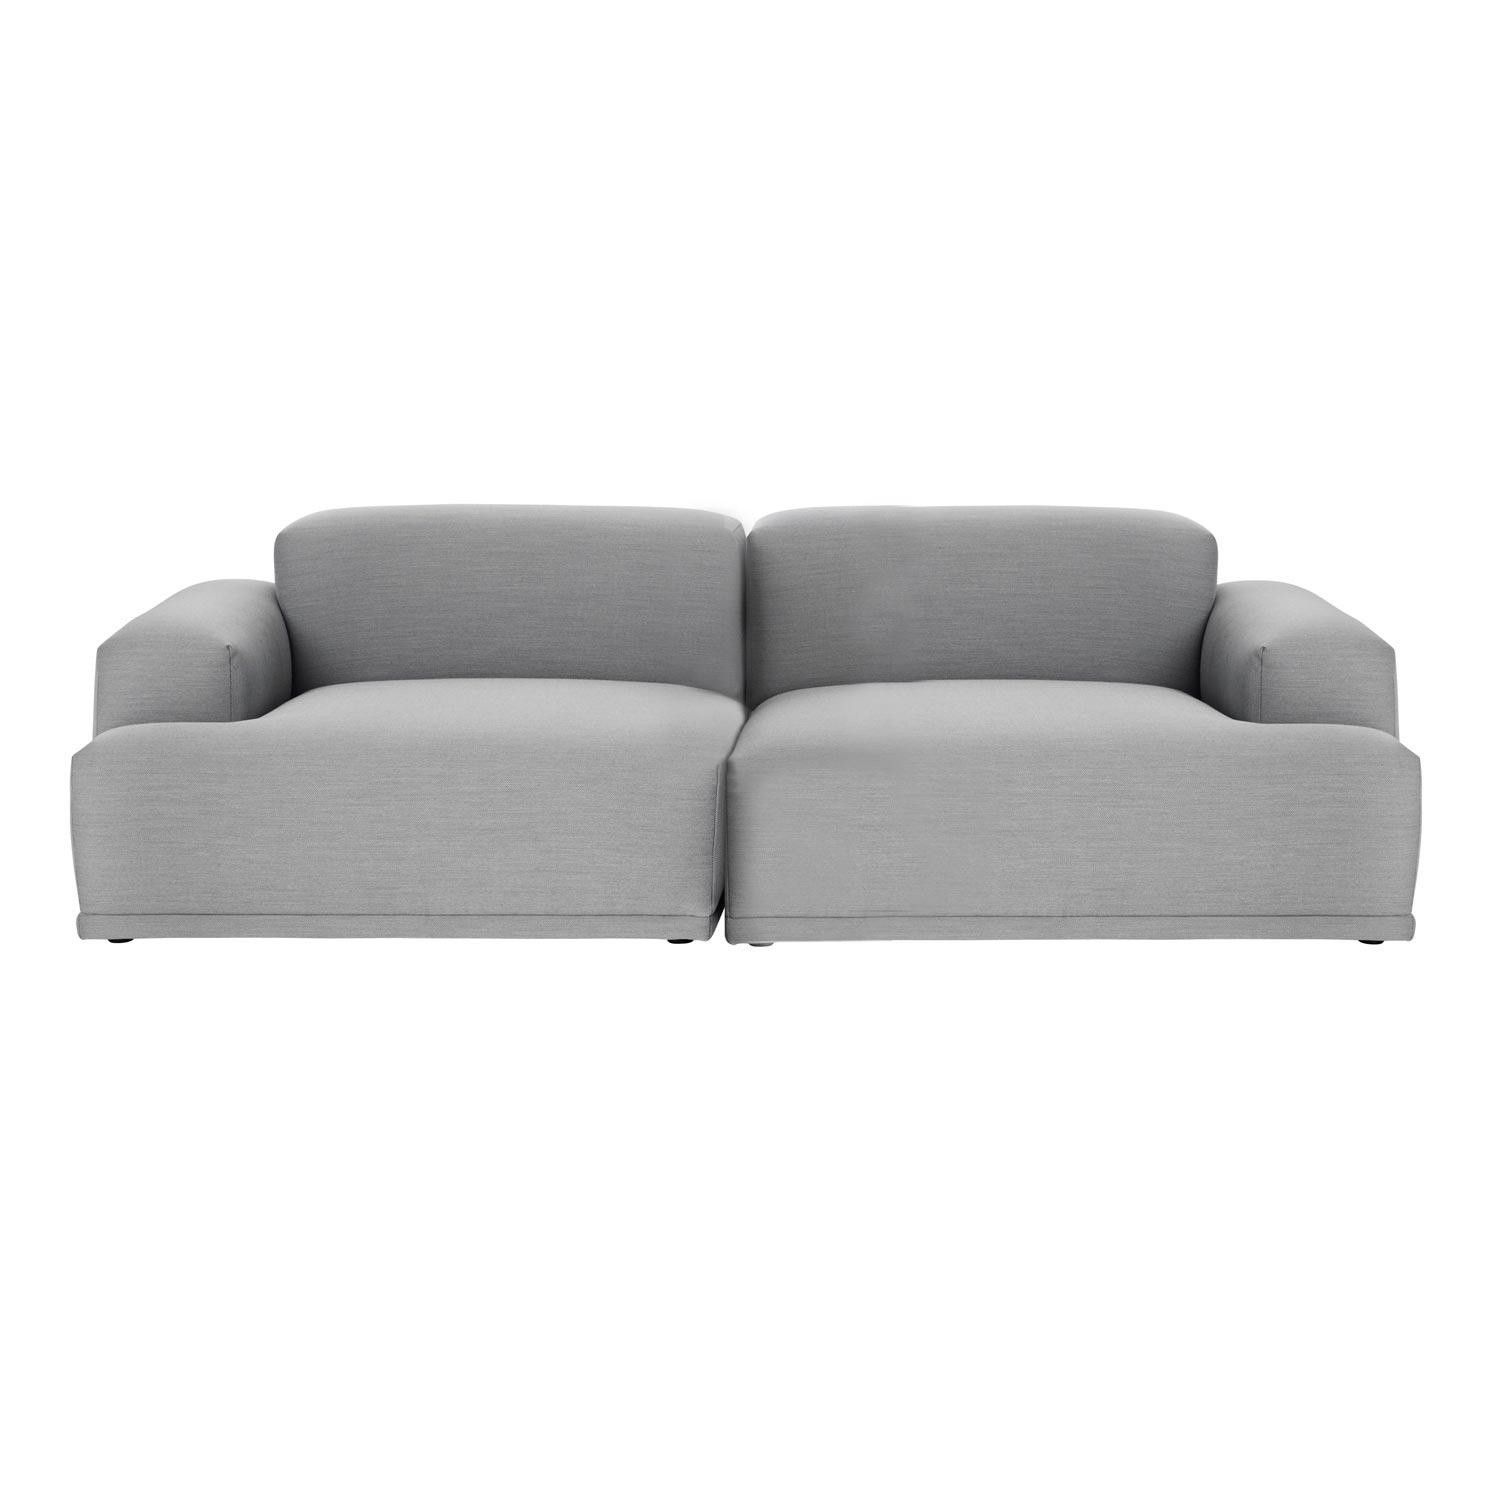 Lounge Sofa Grau Connect Lounge 2 Seater Sofa